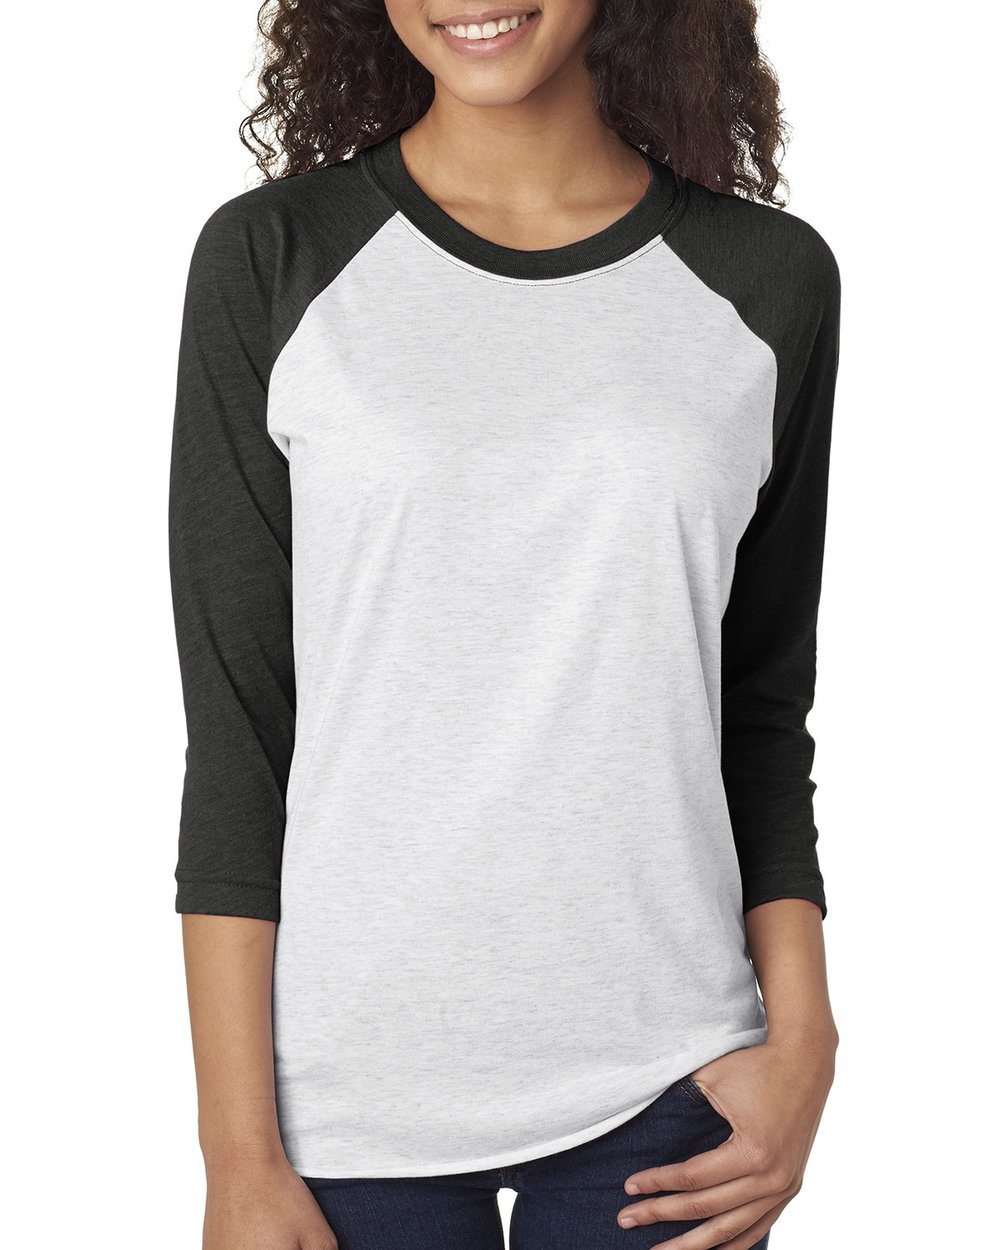 Next Level 3/4 Raglan #6051